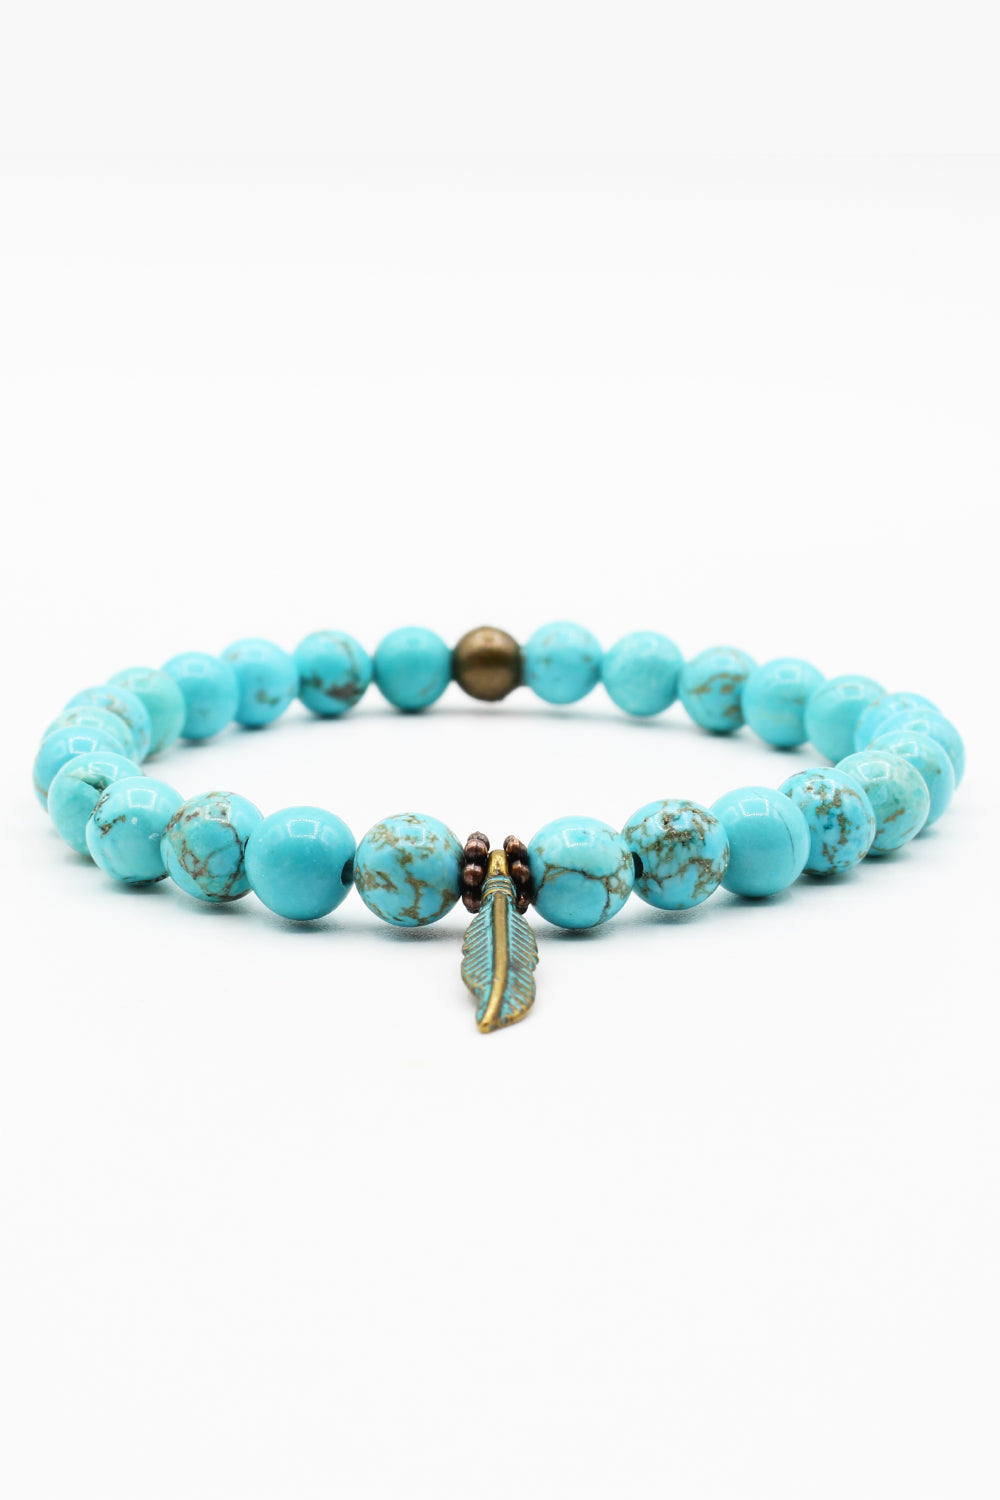 Peaceful Mind Bracelet